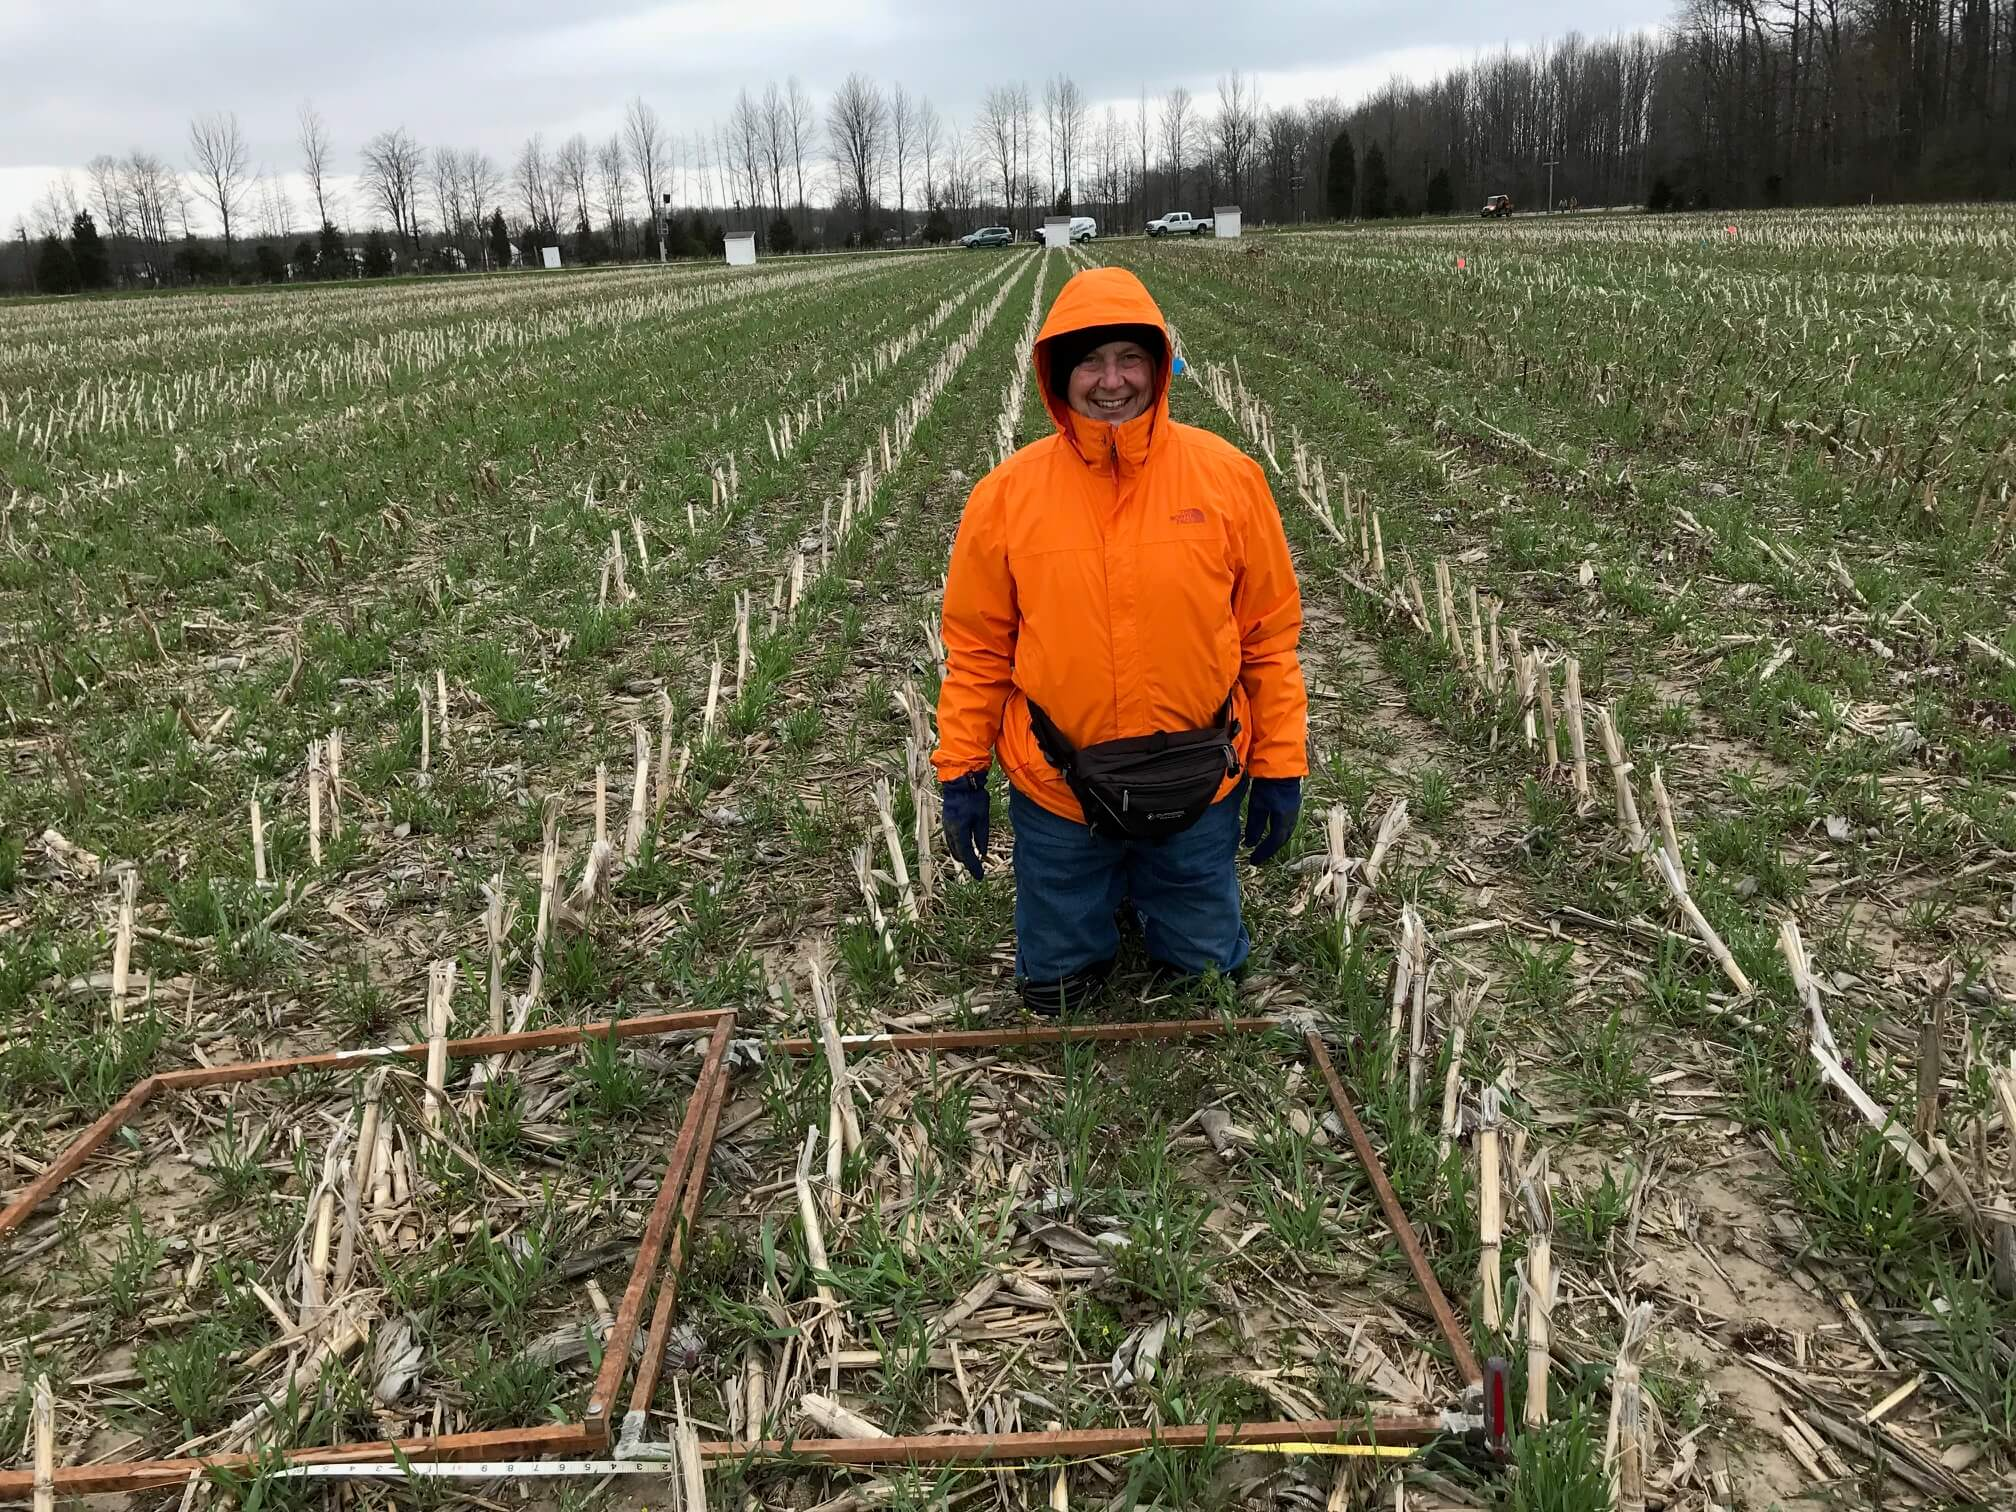 In a field. Eileen Kladivko performed a 35-year research project at SEPAC on field tile drainage.